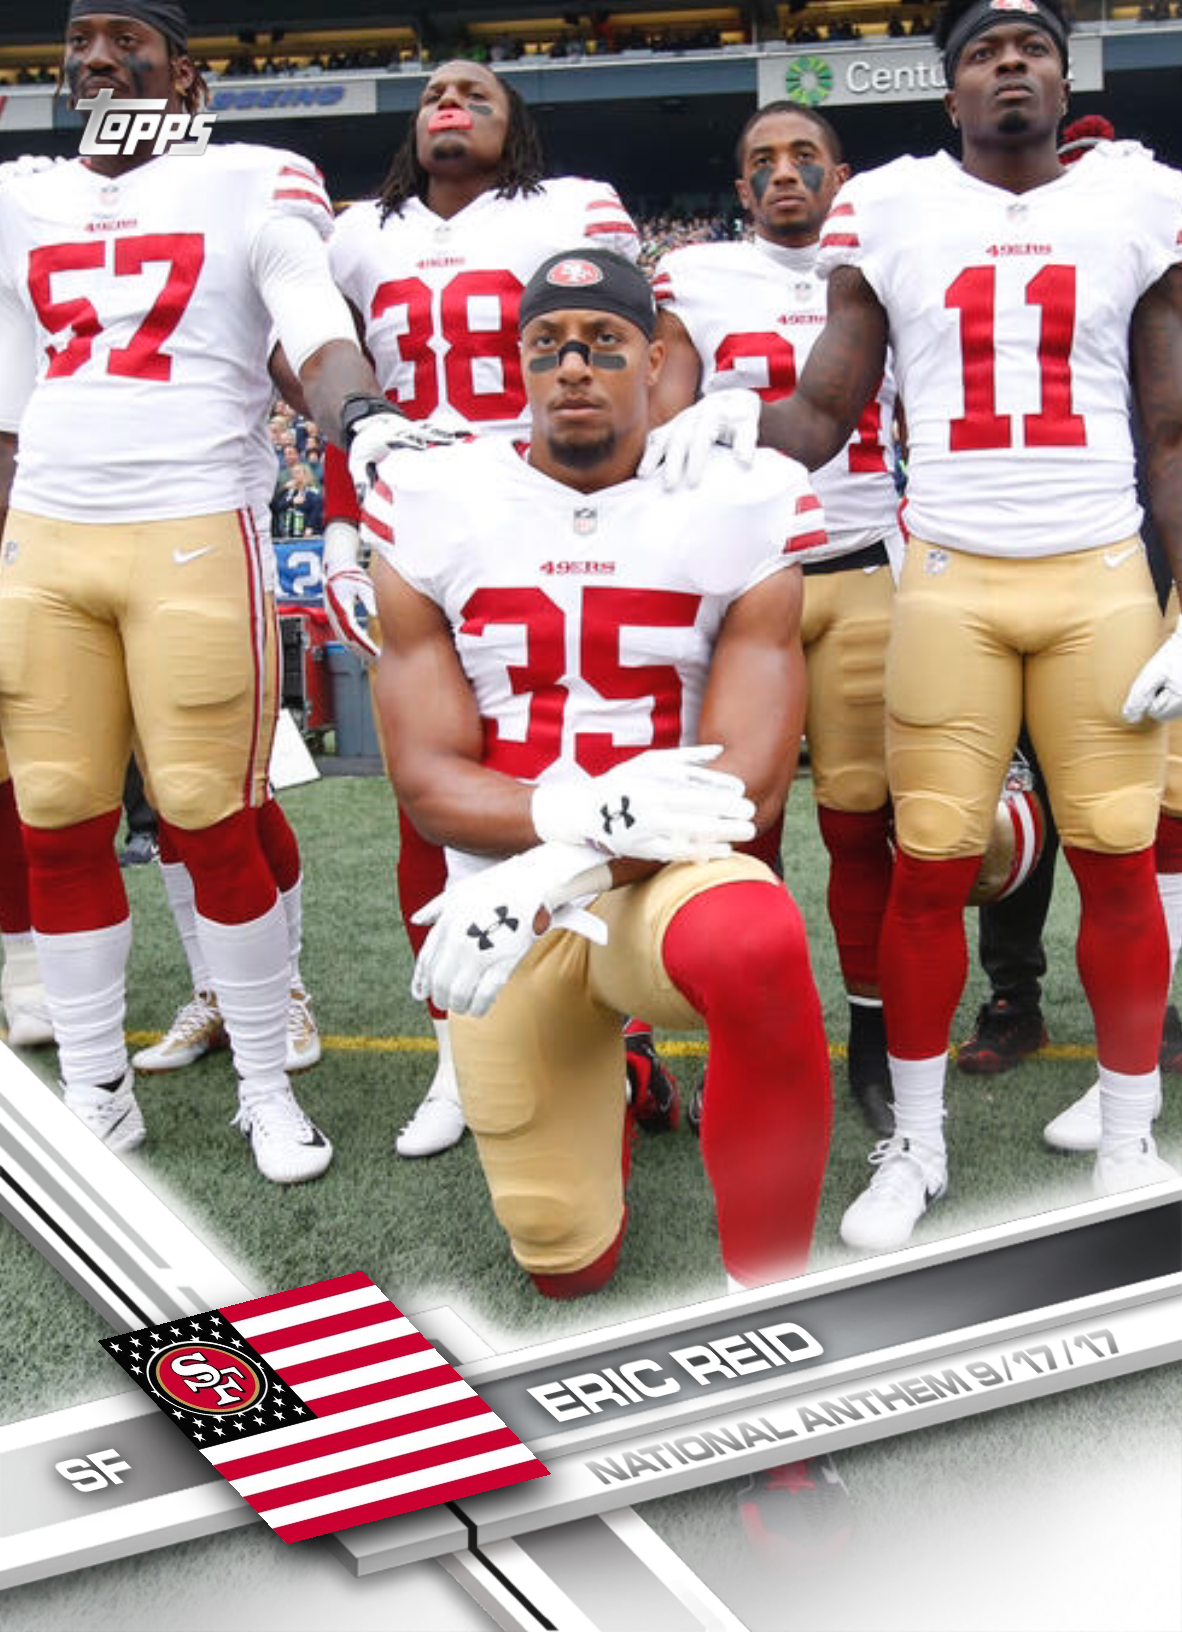 Nfl Player Says This Is What Trump Gets Wrong About Kneeling Eric Reid 49ers Players Nfl Players